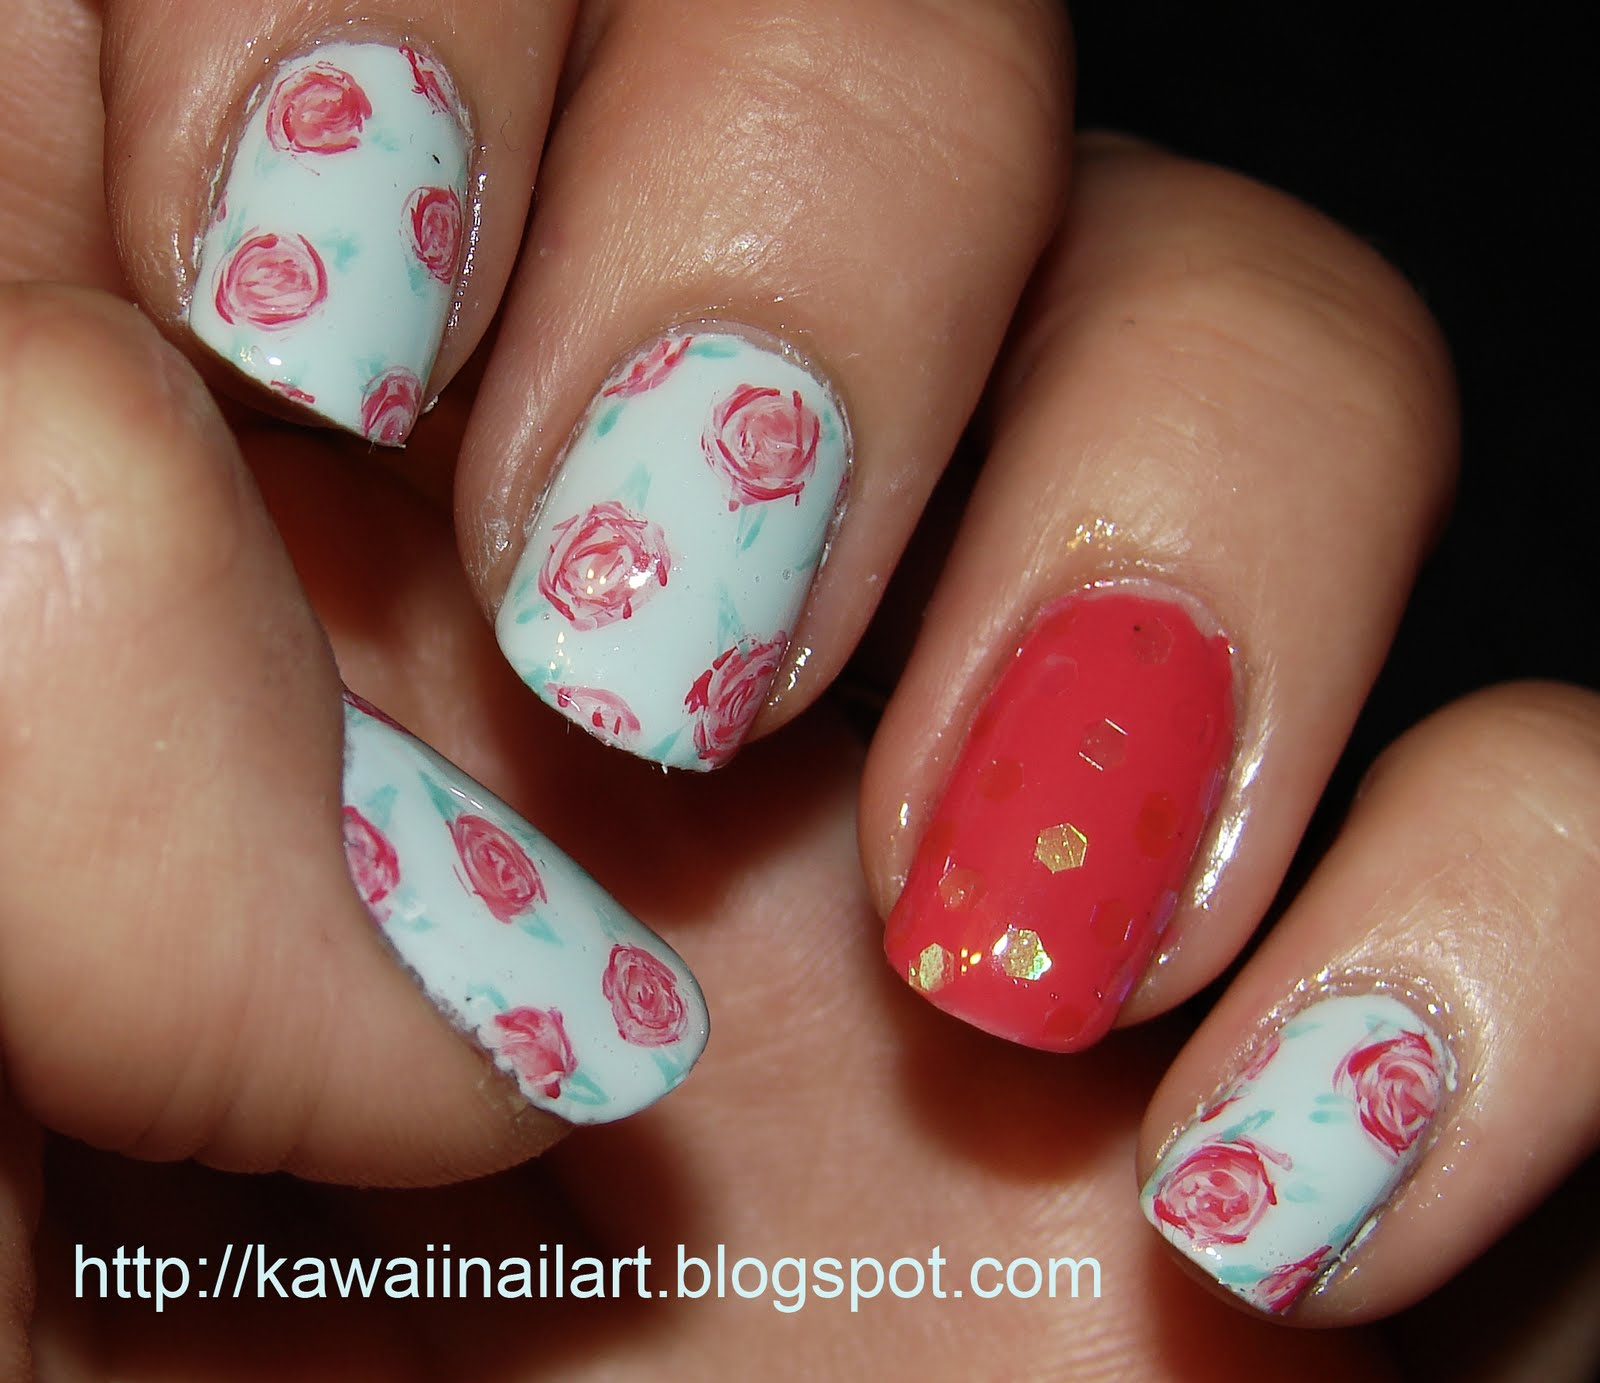 Kawaii Nail Art: Pink roses on baby blue Nail Art